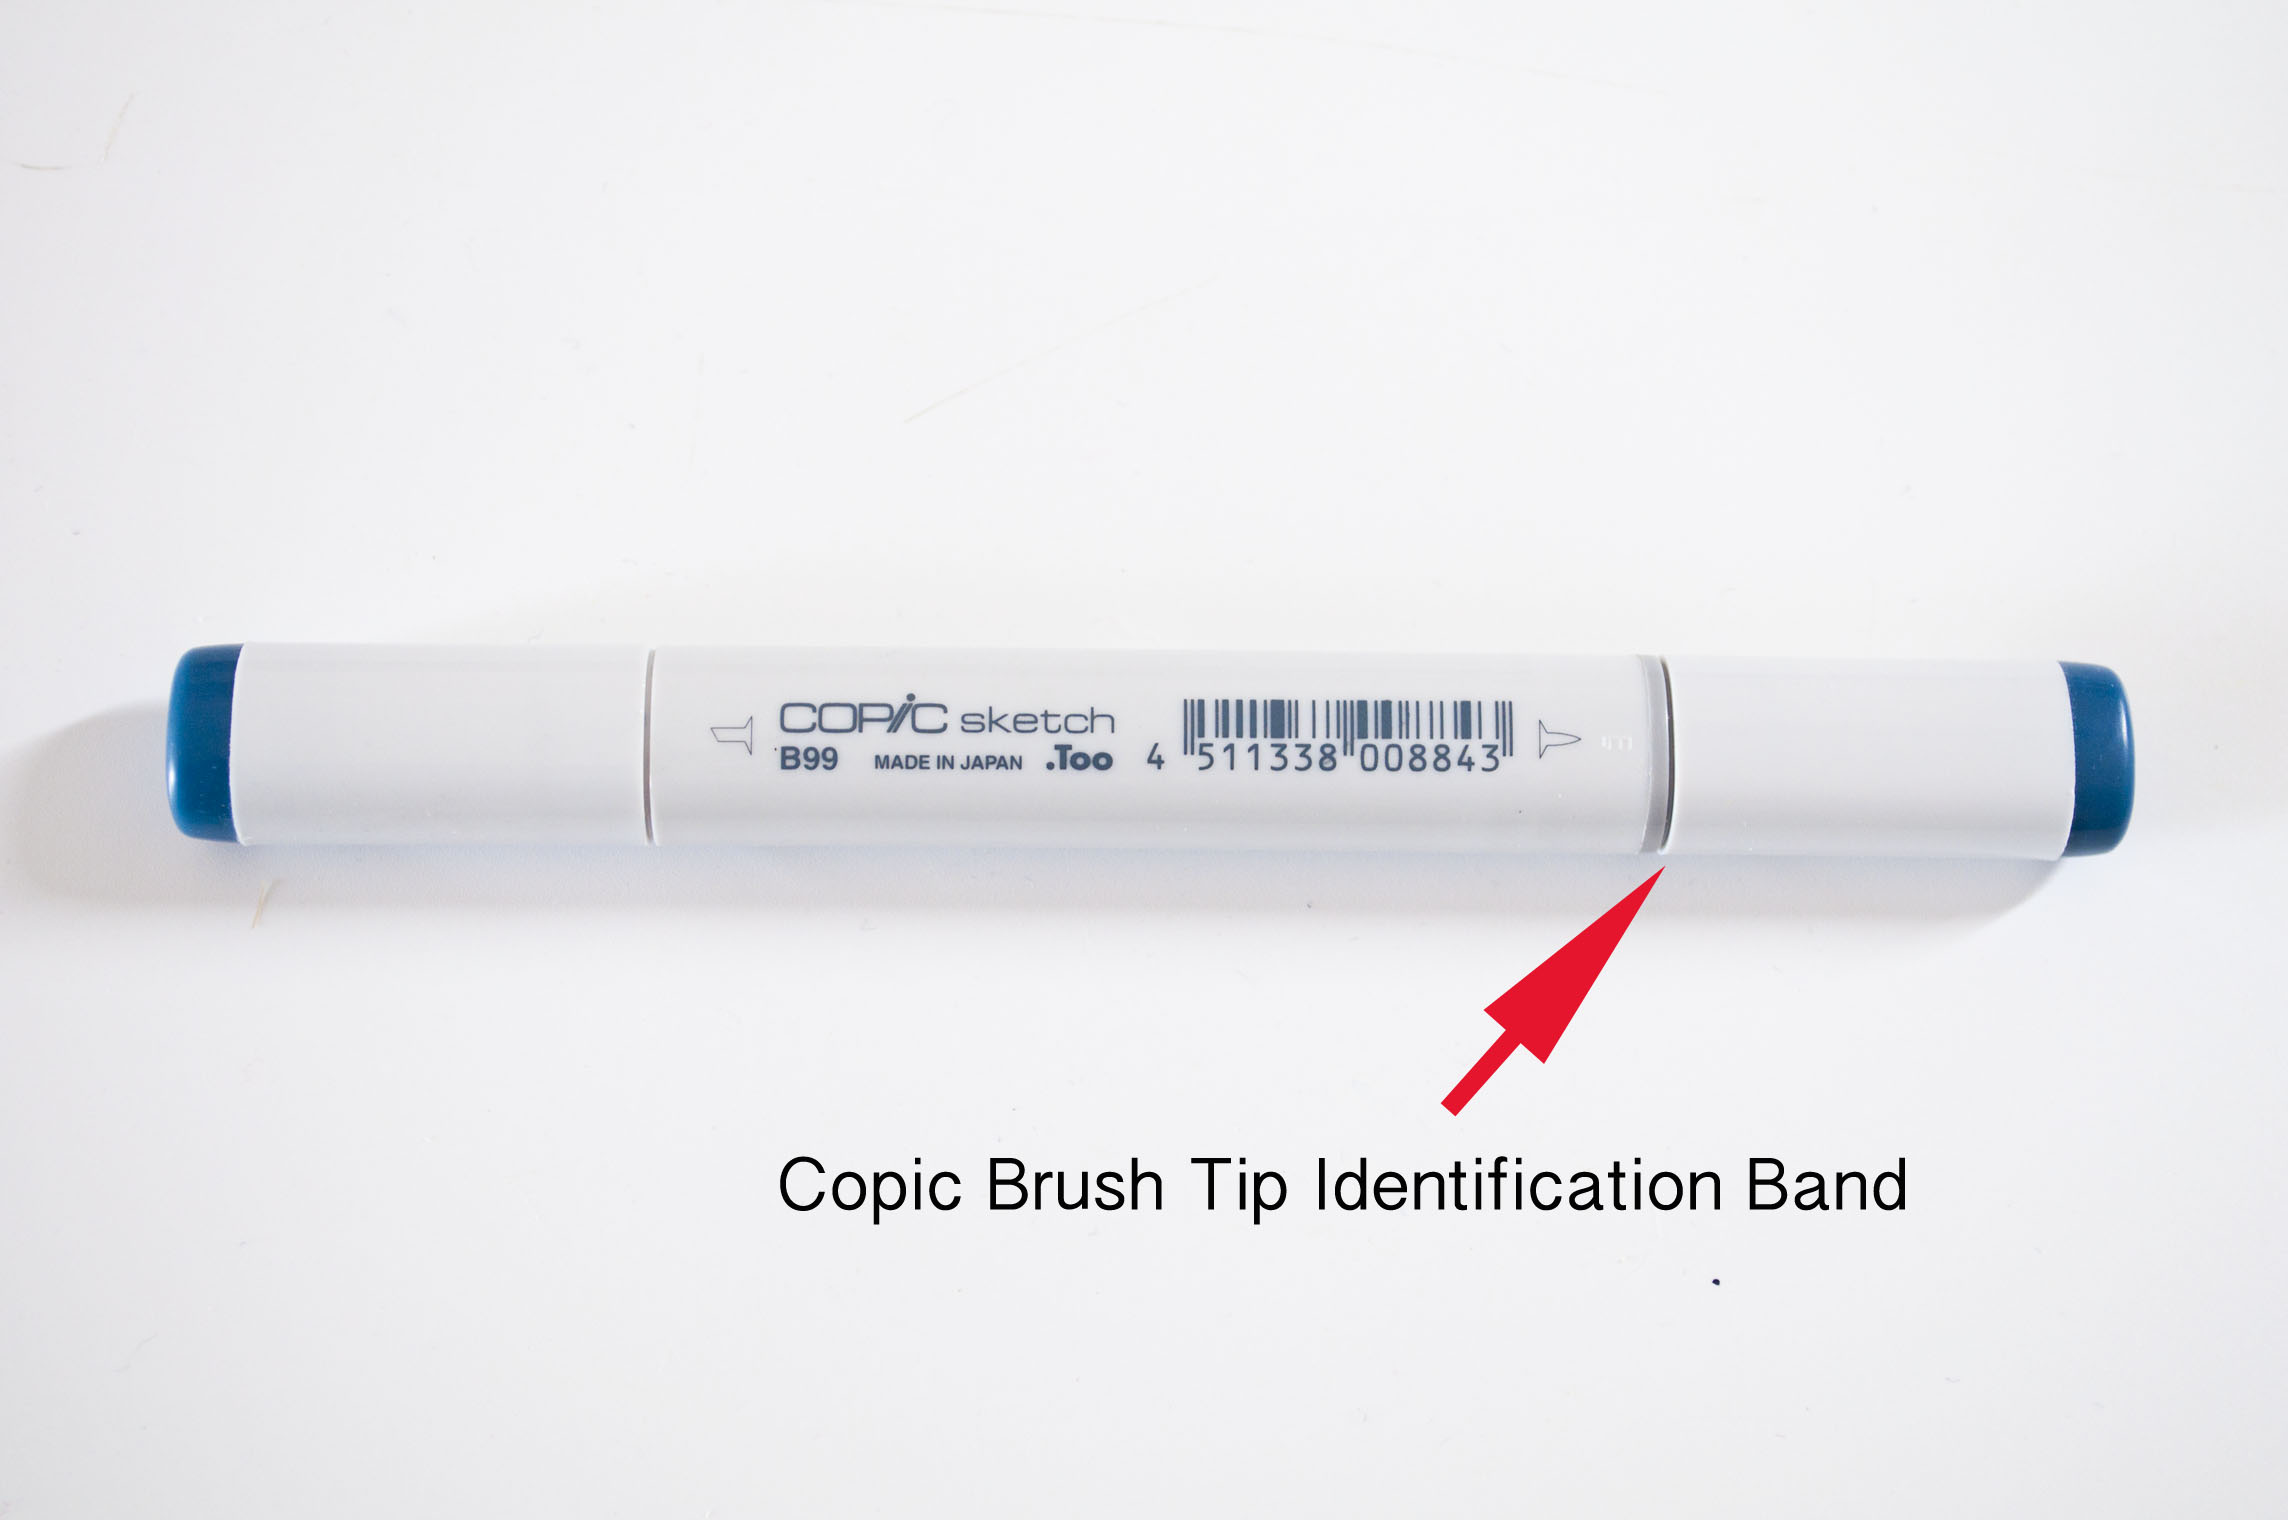 Copic Sketch Brush Tip Band.jpg